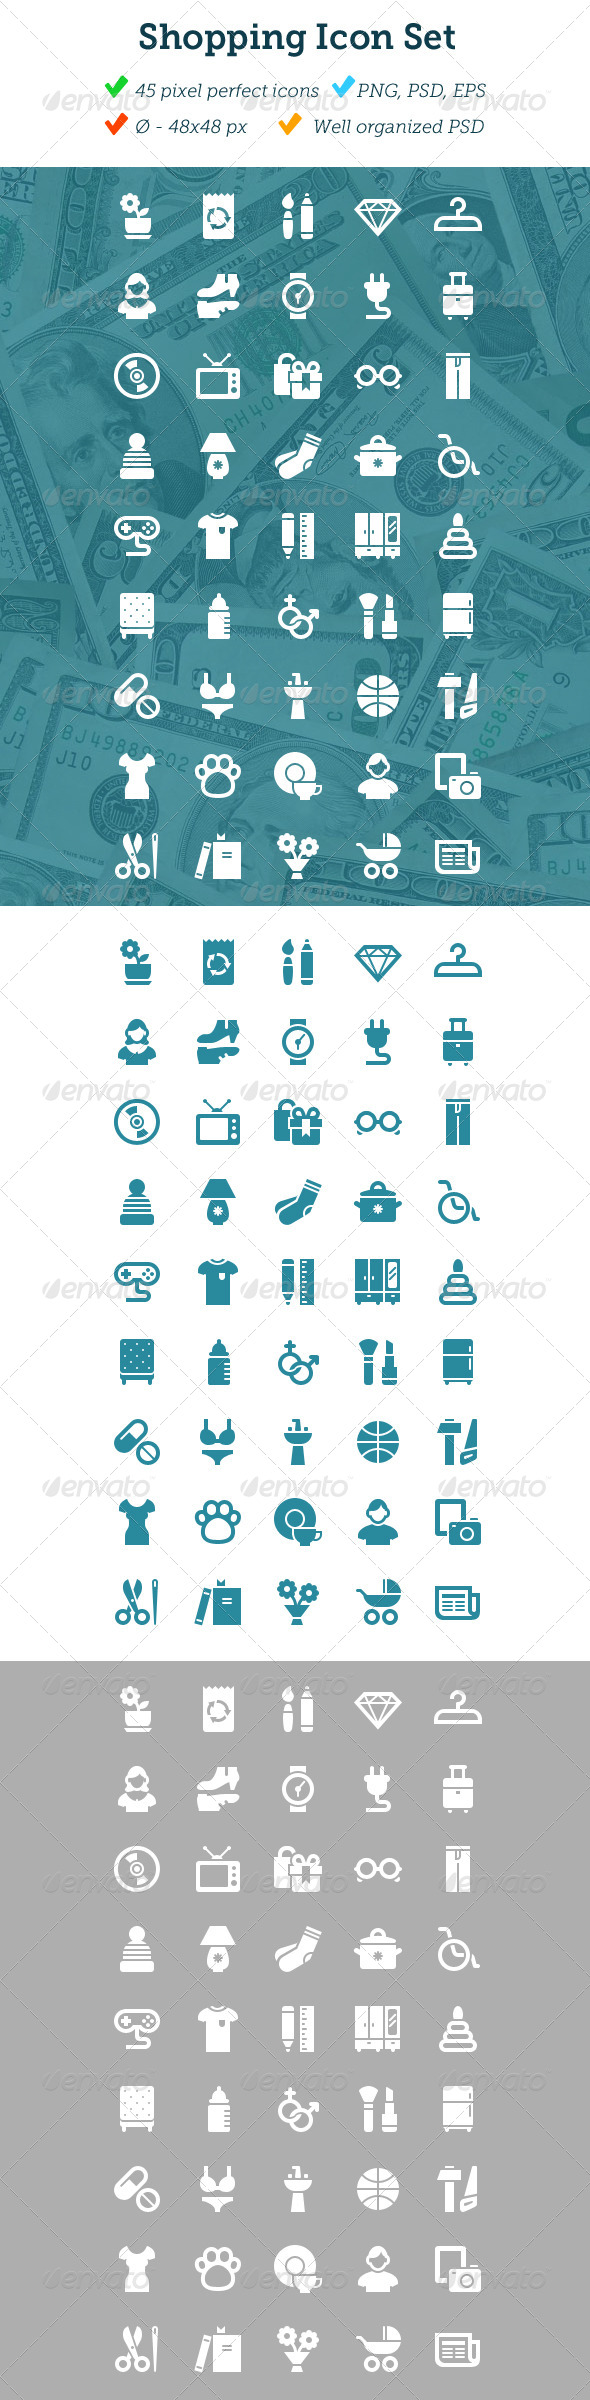 Shopping Icon Set (part 2) - Business Icons